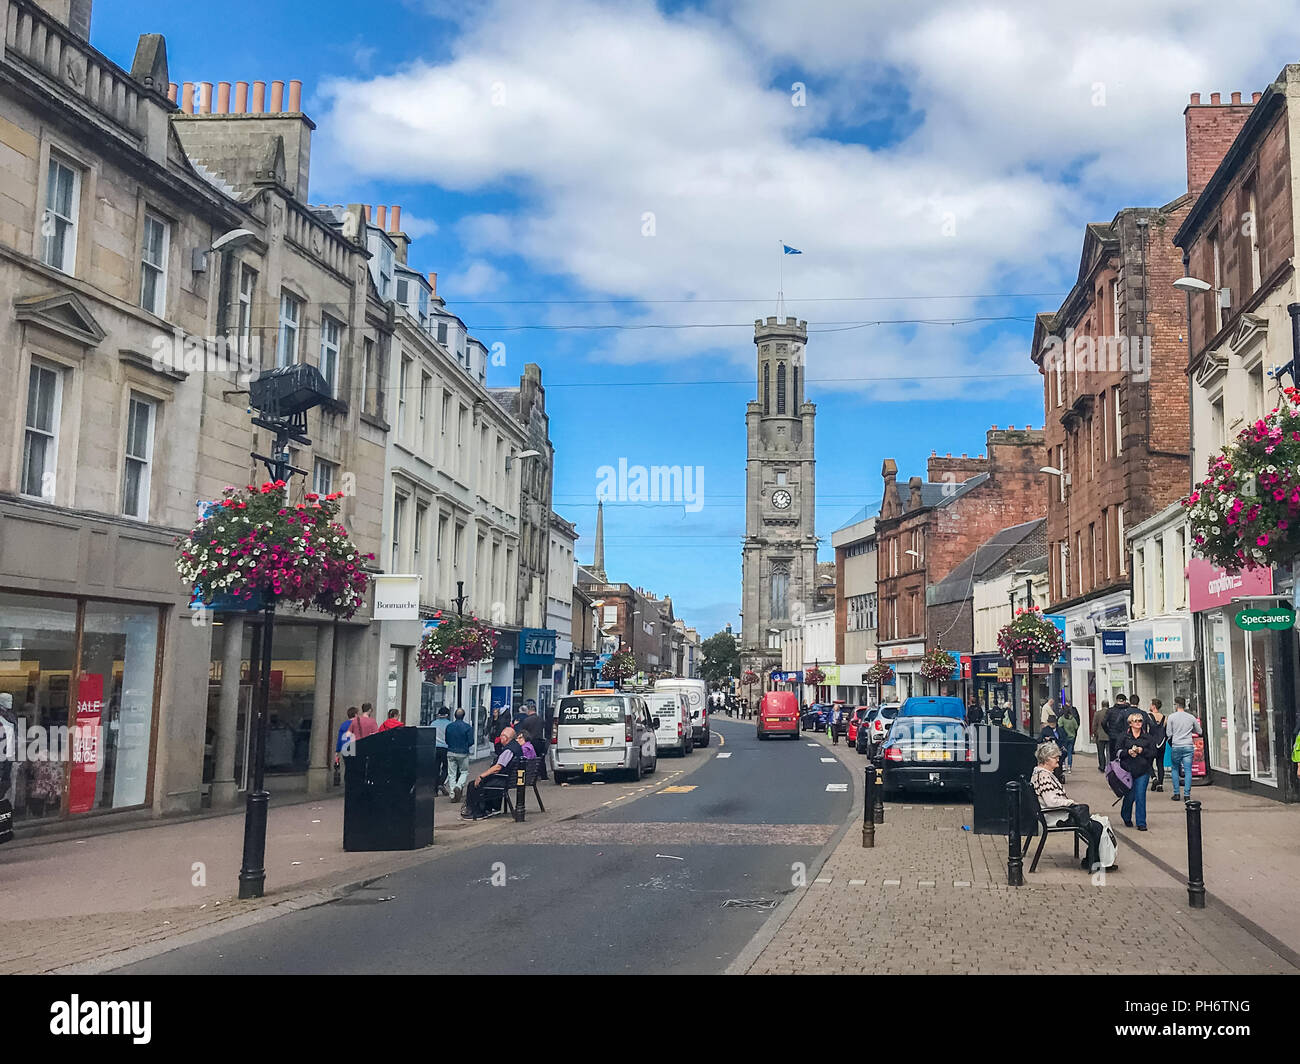 Ayr, Scotland, UK - August 29, 2018: Looking down High Street Ayr where most of the street has been pedestrianised in a bid to control traffic in the  - Stock Image